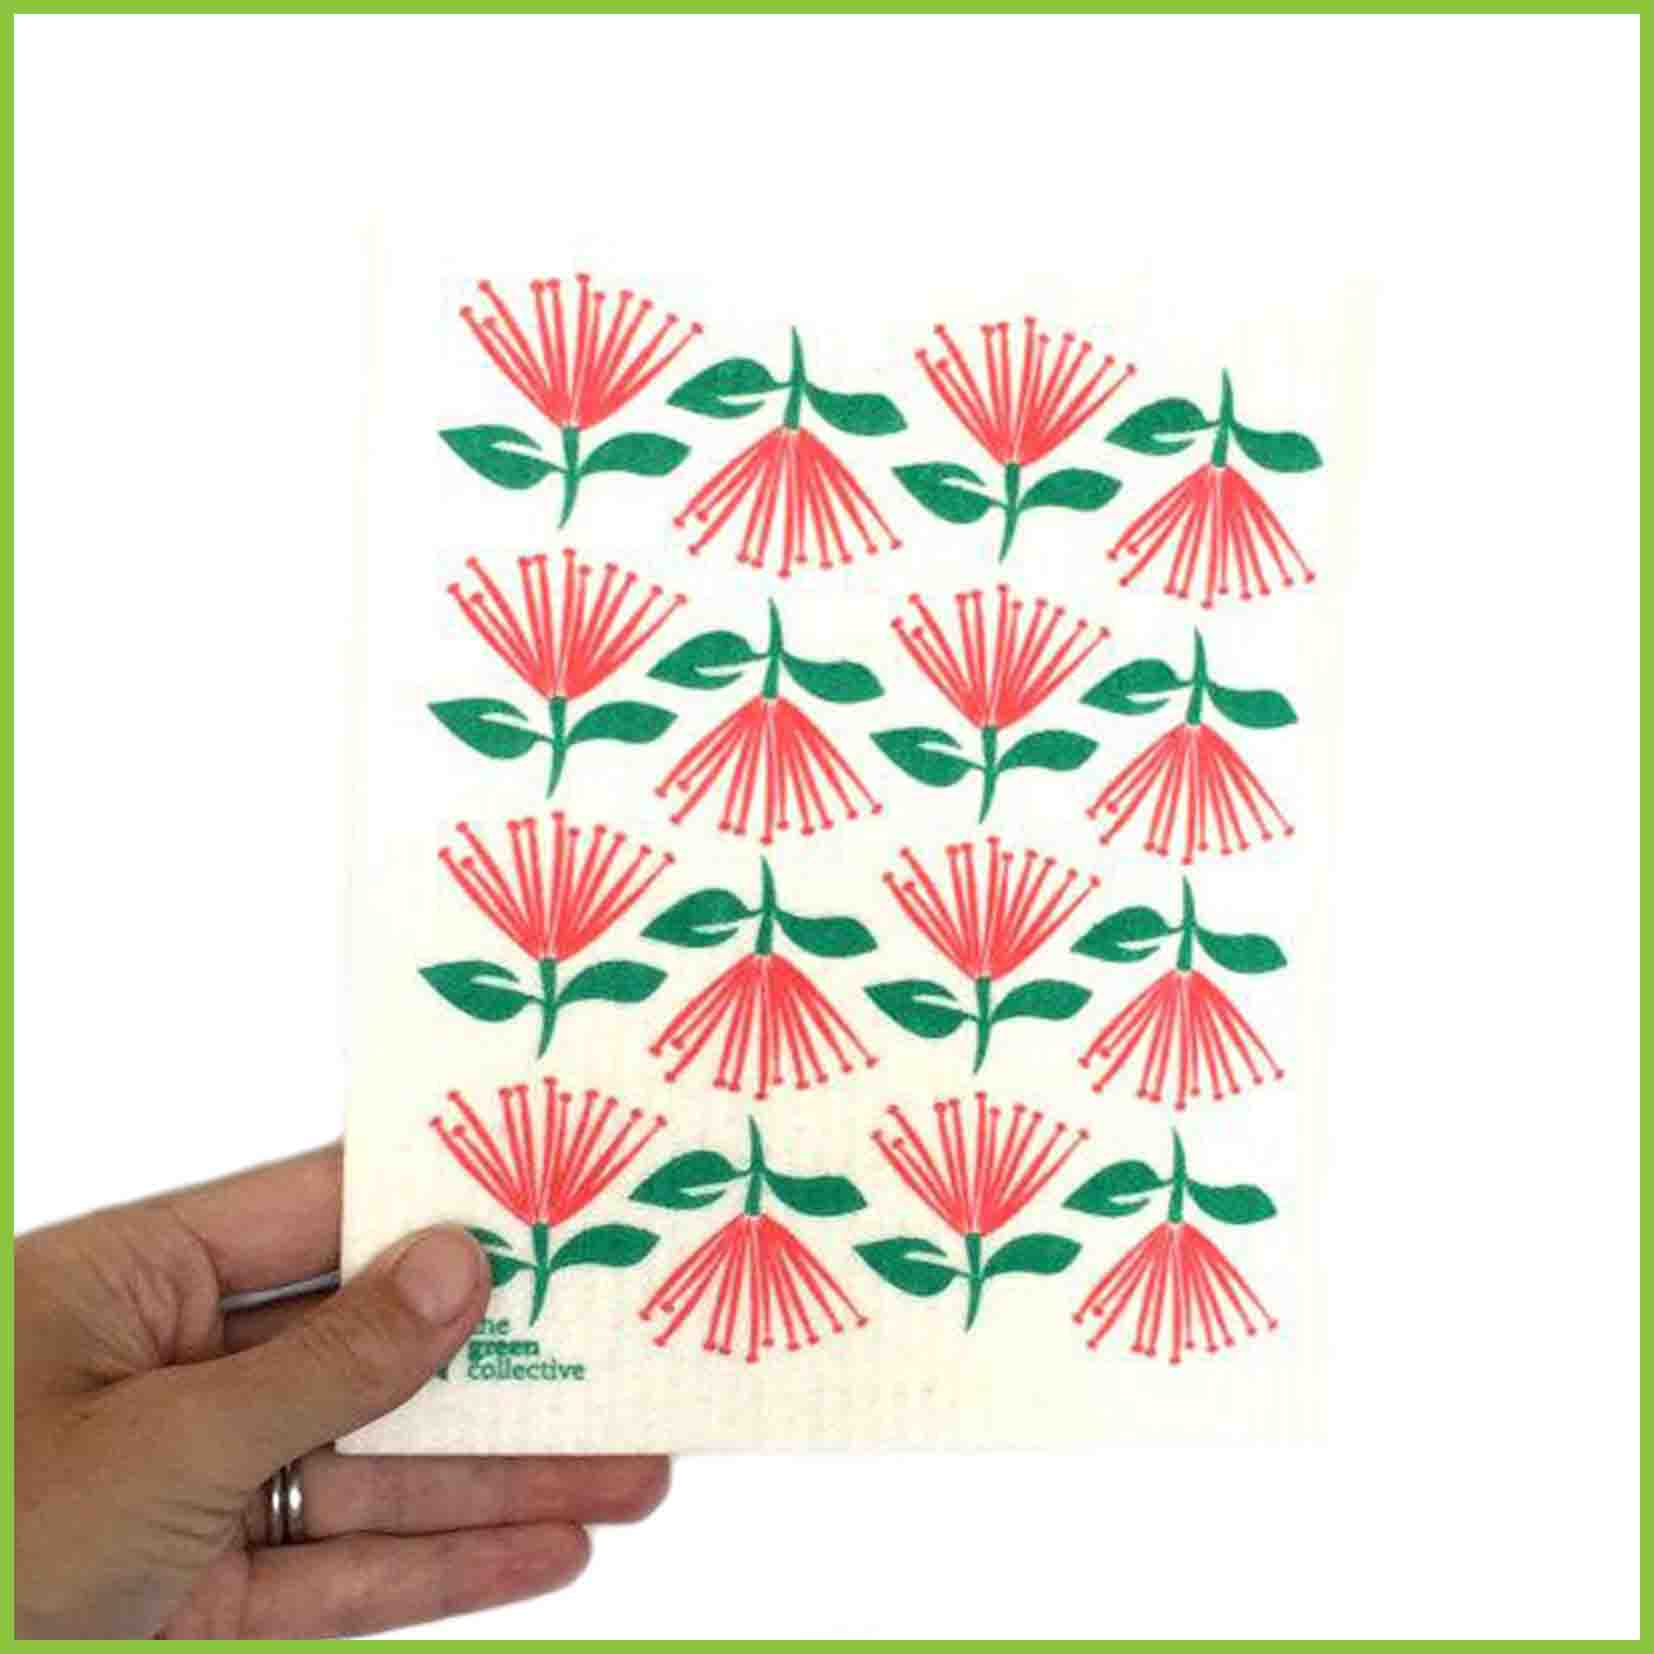 Spruce cloth with a pohutukawa design.